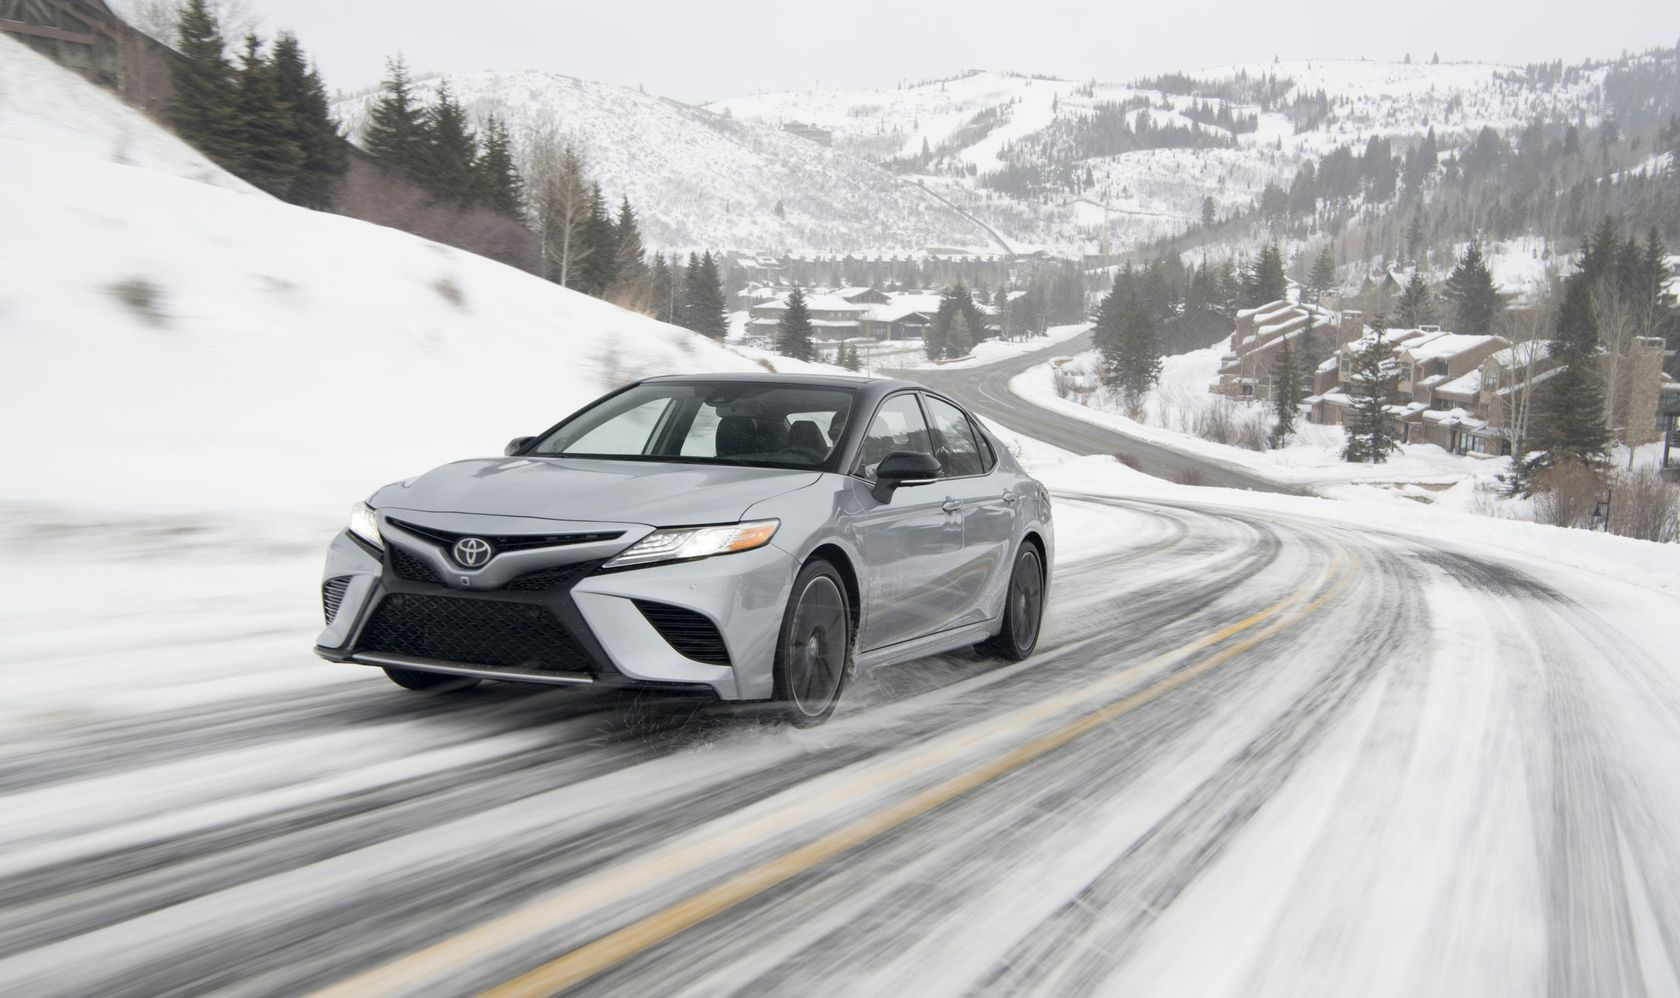 2020_Camry_XSE_AWD_Celestite-Silver_Midnight-Black-Metallic-Roof_001-scaled